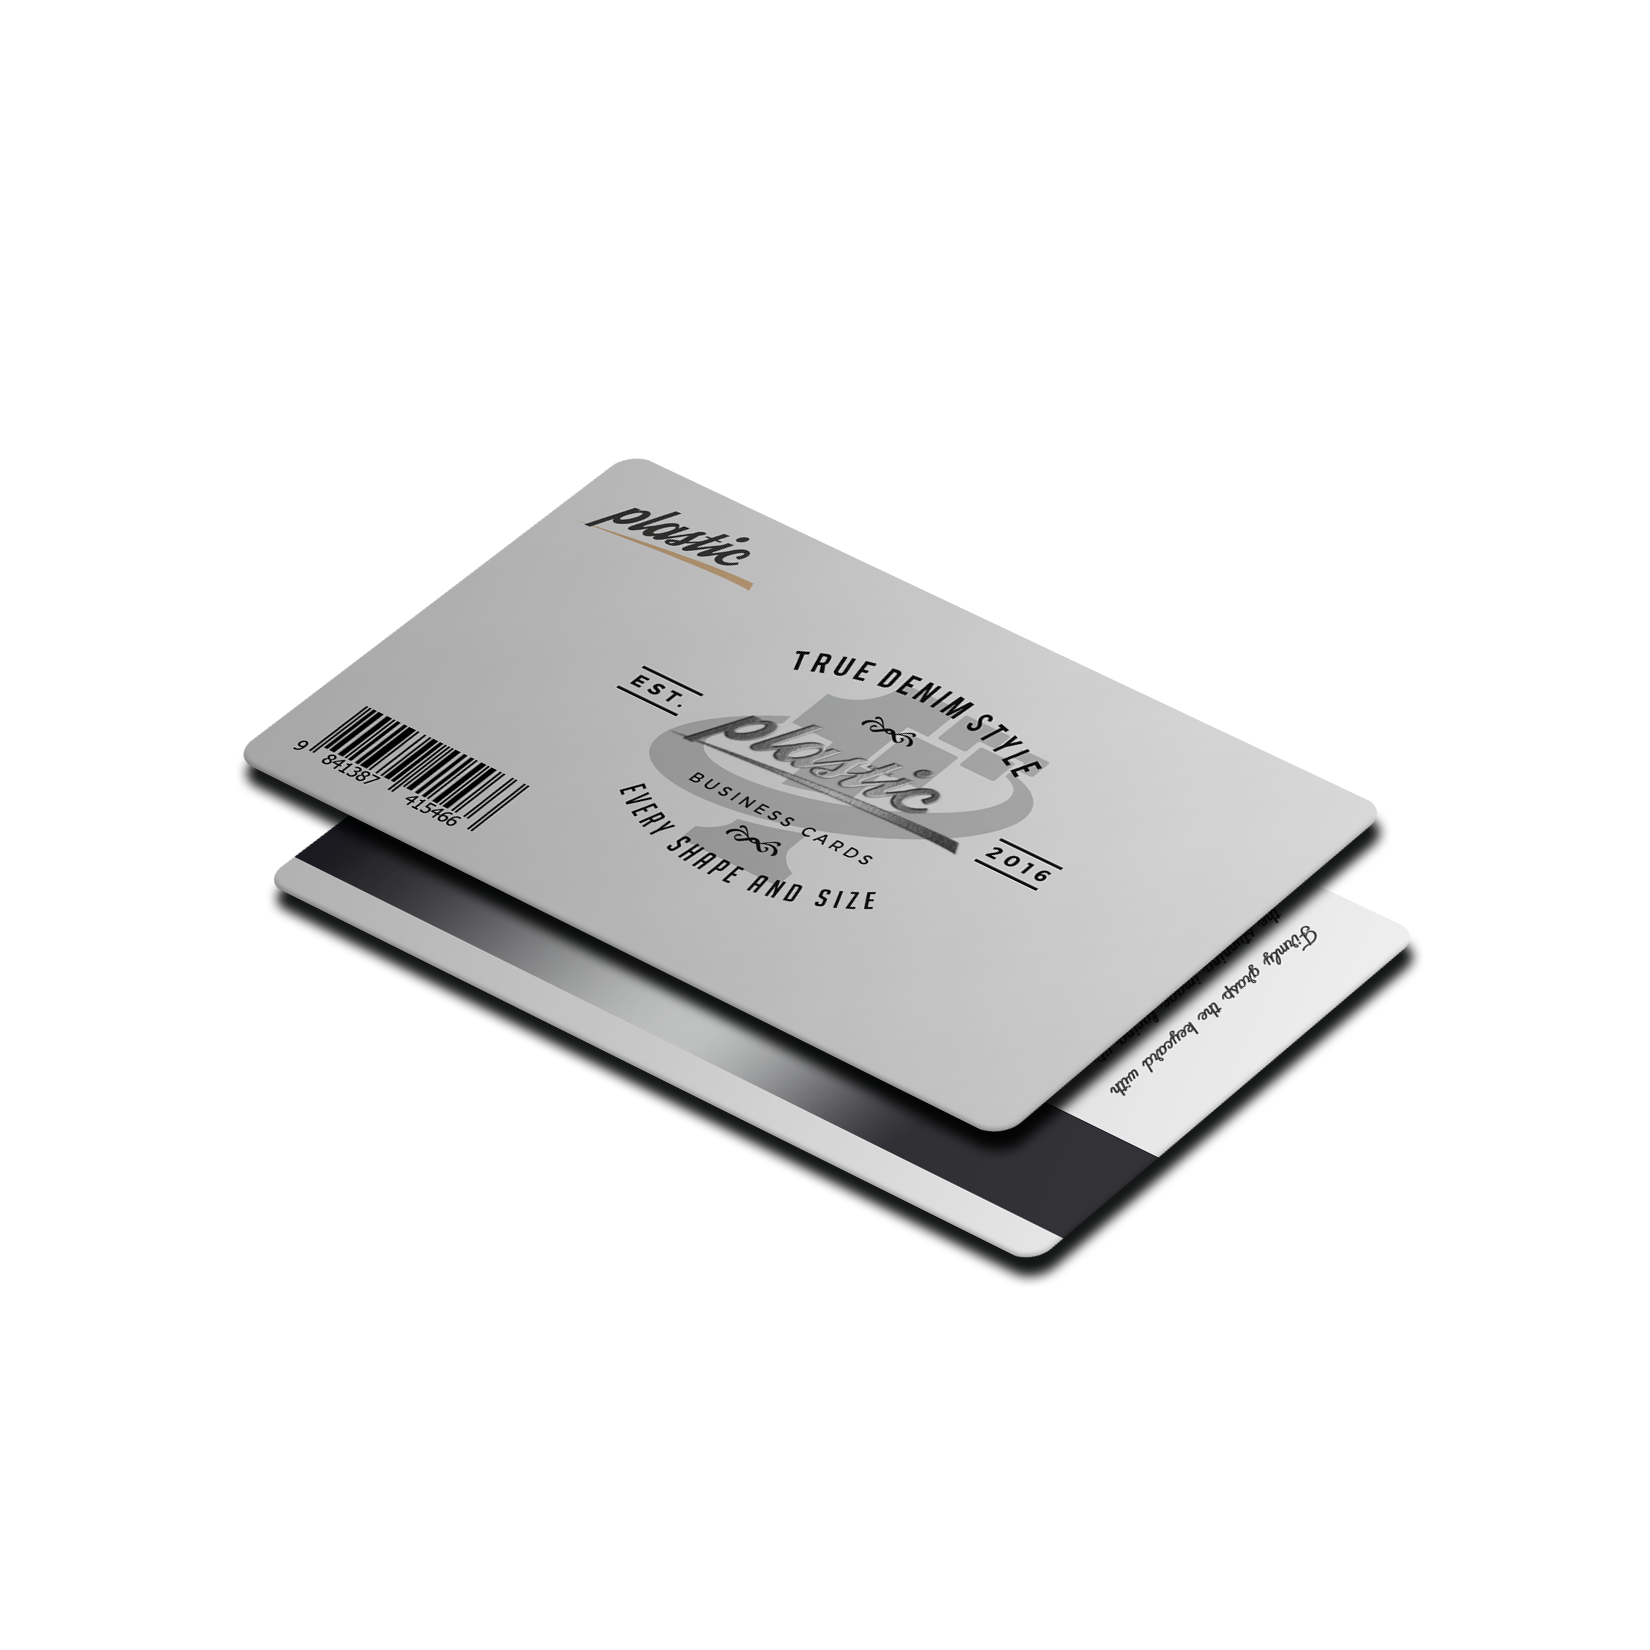 Buy online hotel card qr code signature panel uv hot laser choose your new and unique hotel card from our collection of best plastic hotel cards fandeluxe Choice Image